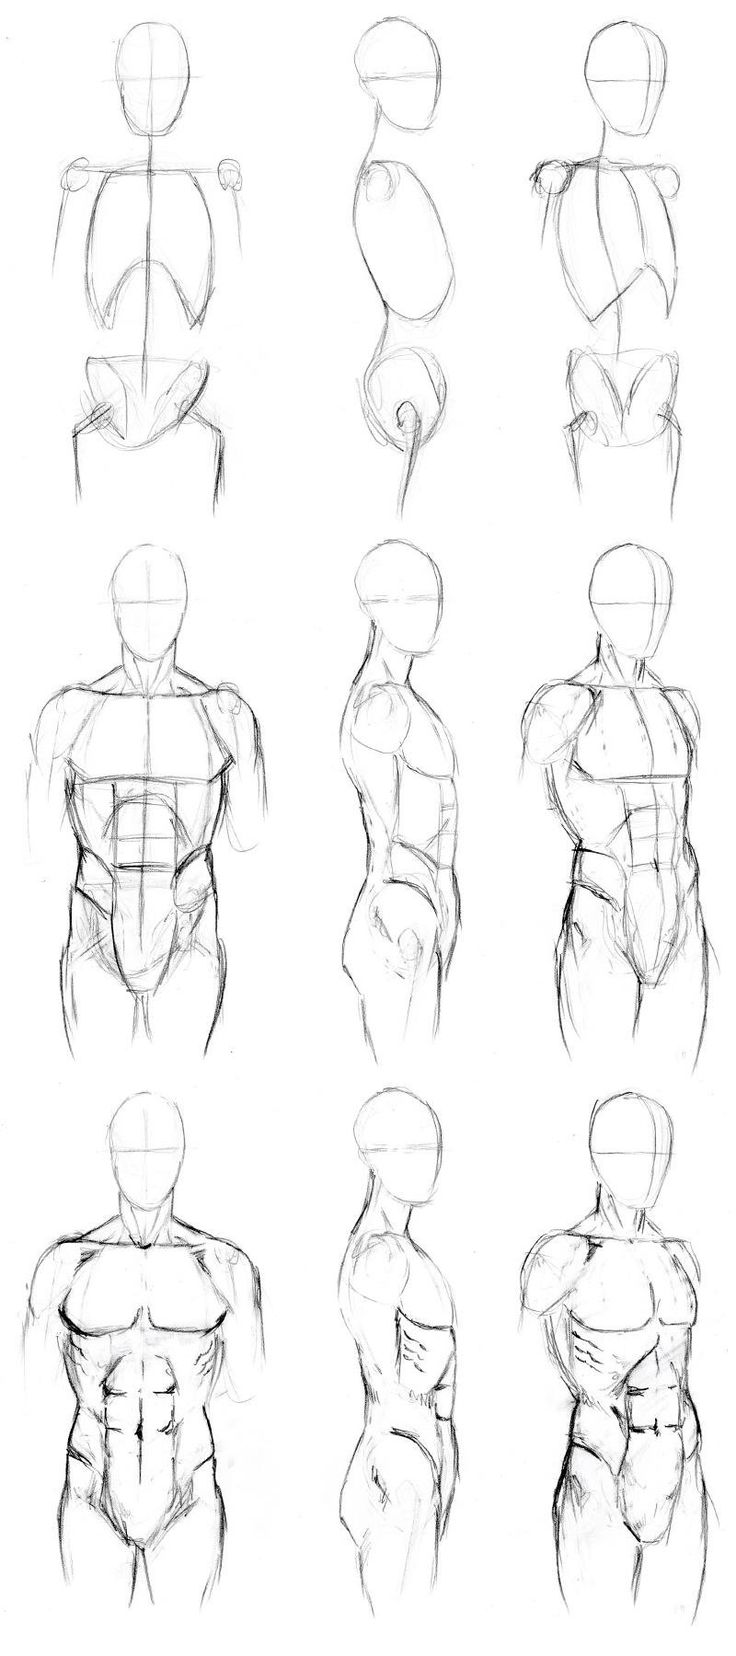 Step 1: Skeleton Sketch your basic structure outline. For t he torso we will of course need the vertebrae, ribcage and pelvis. Don't worry about sketching these the -exact- shape of the actual bones...